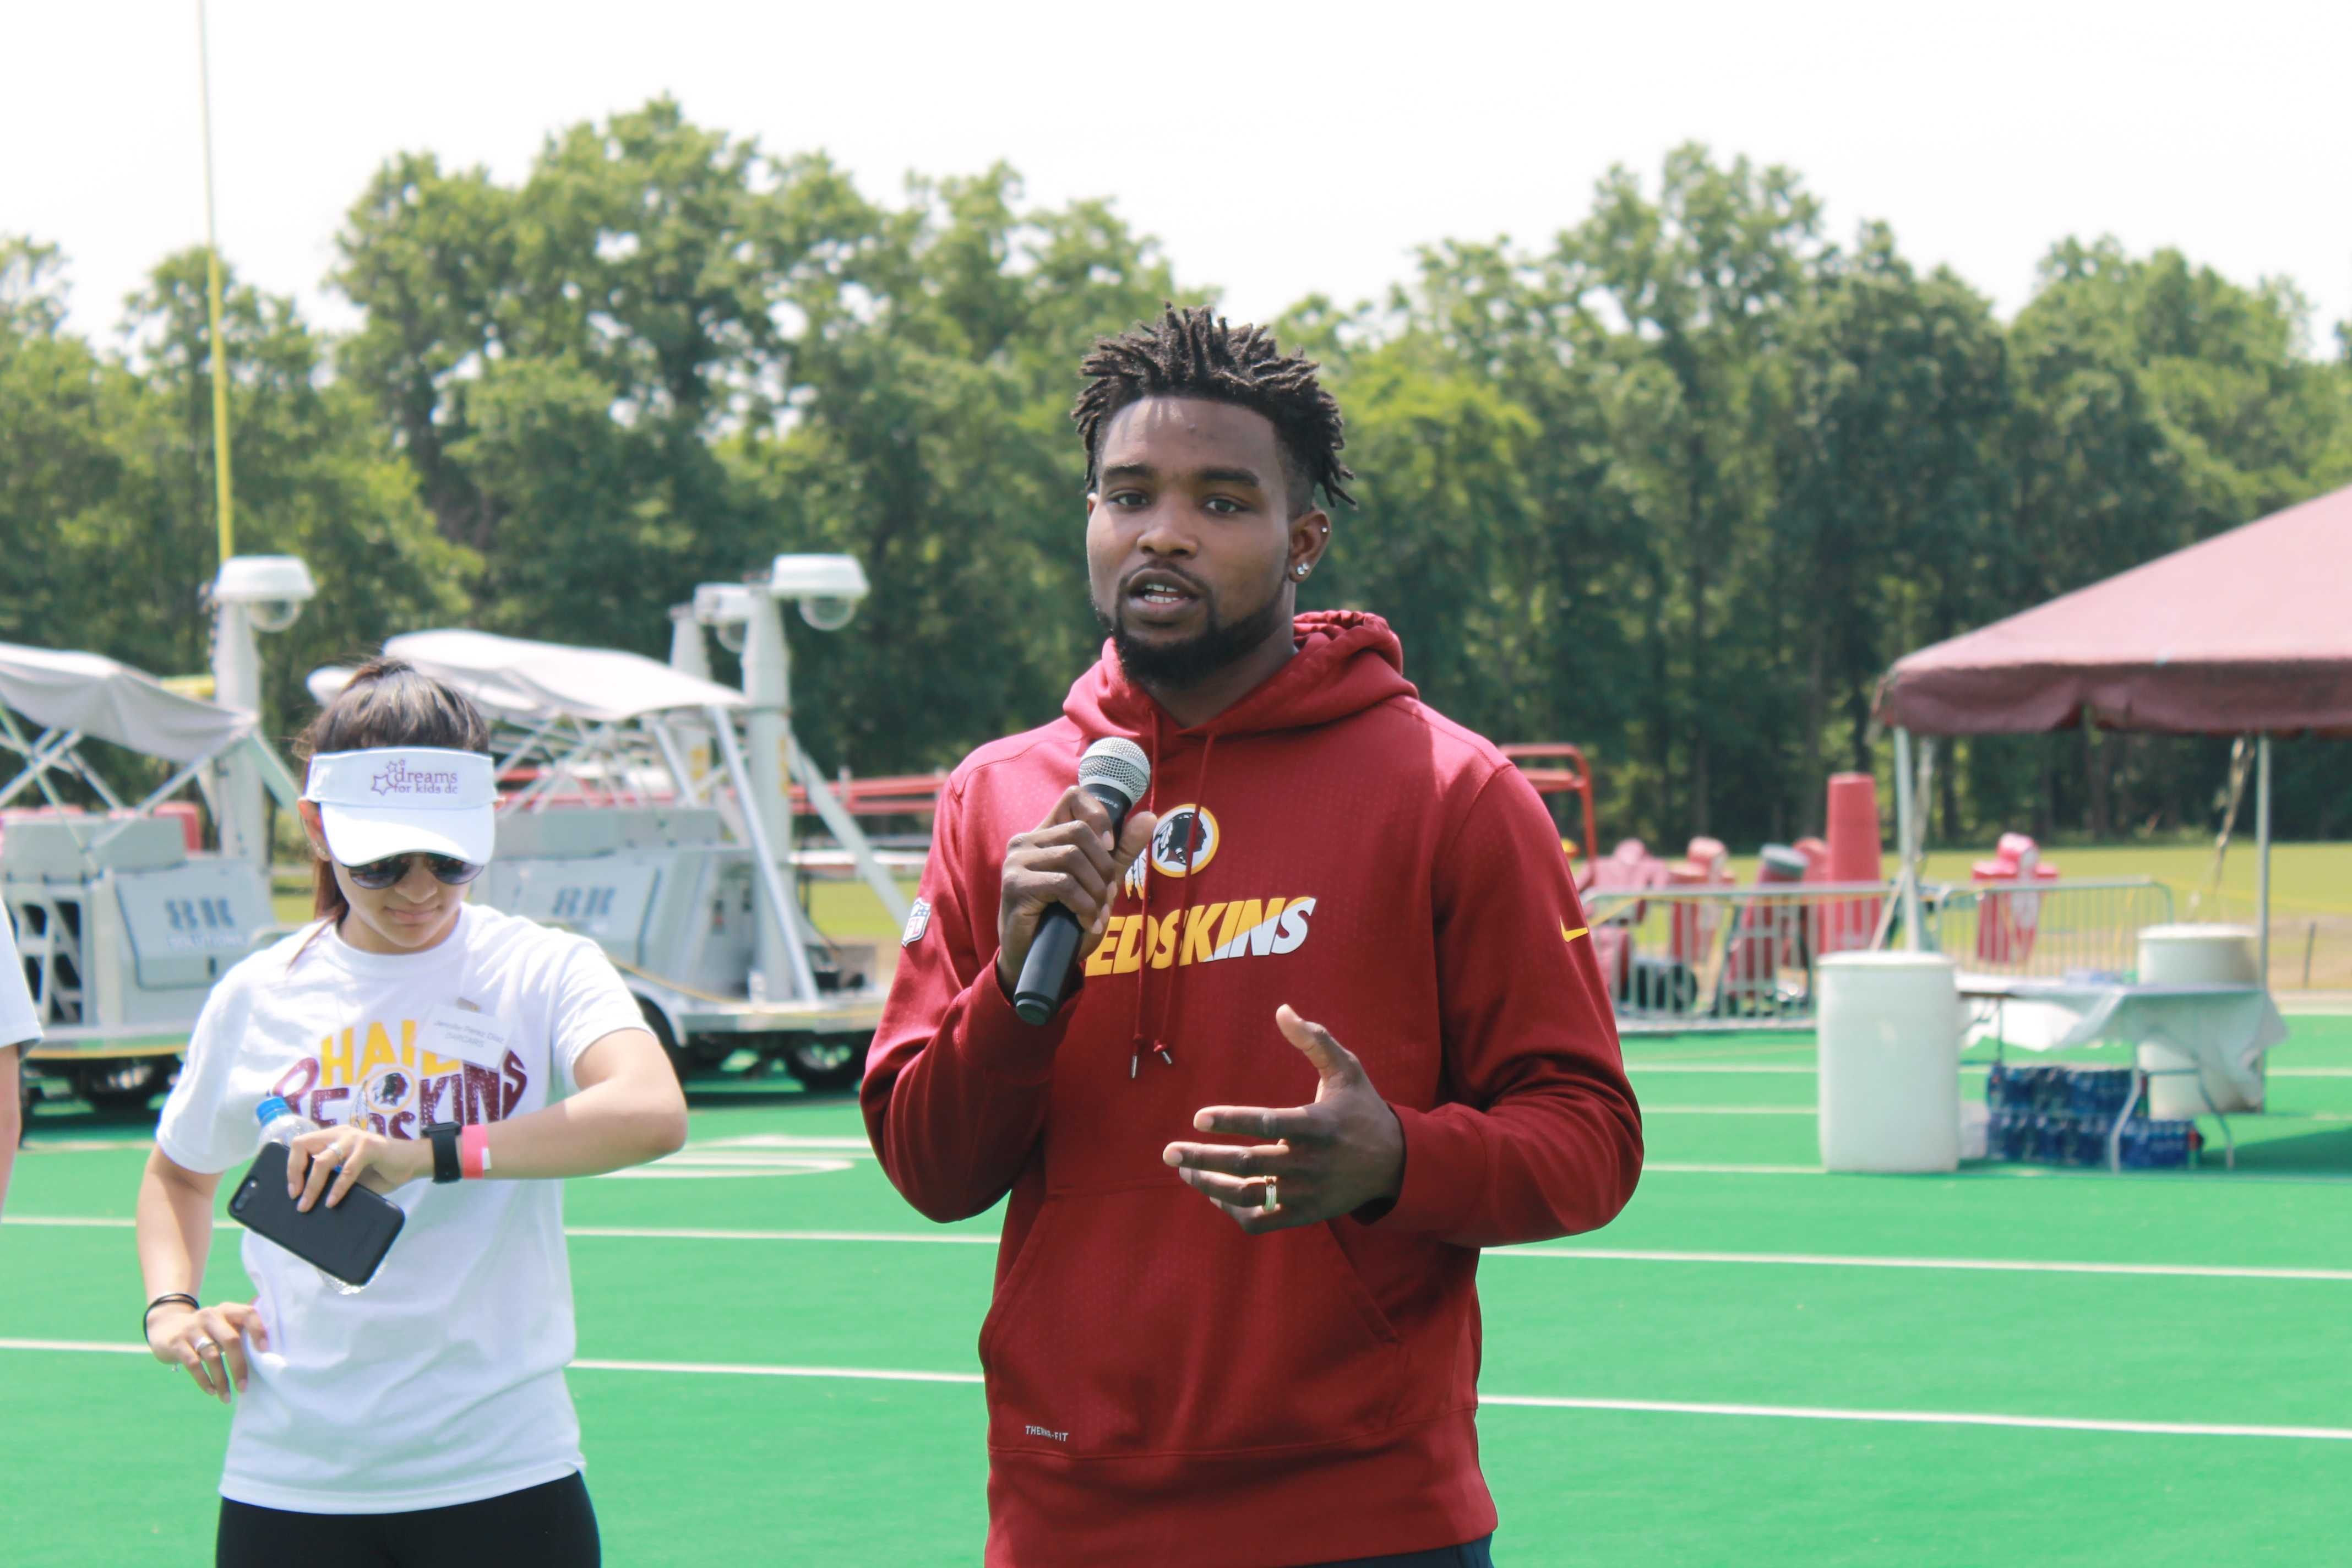 Dreams For Kids DC and Washington Redskins Host Charity Football Clinic